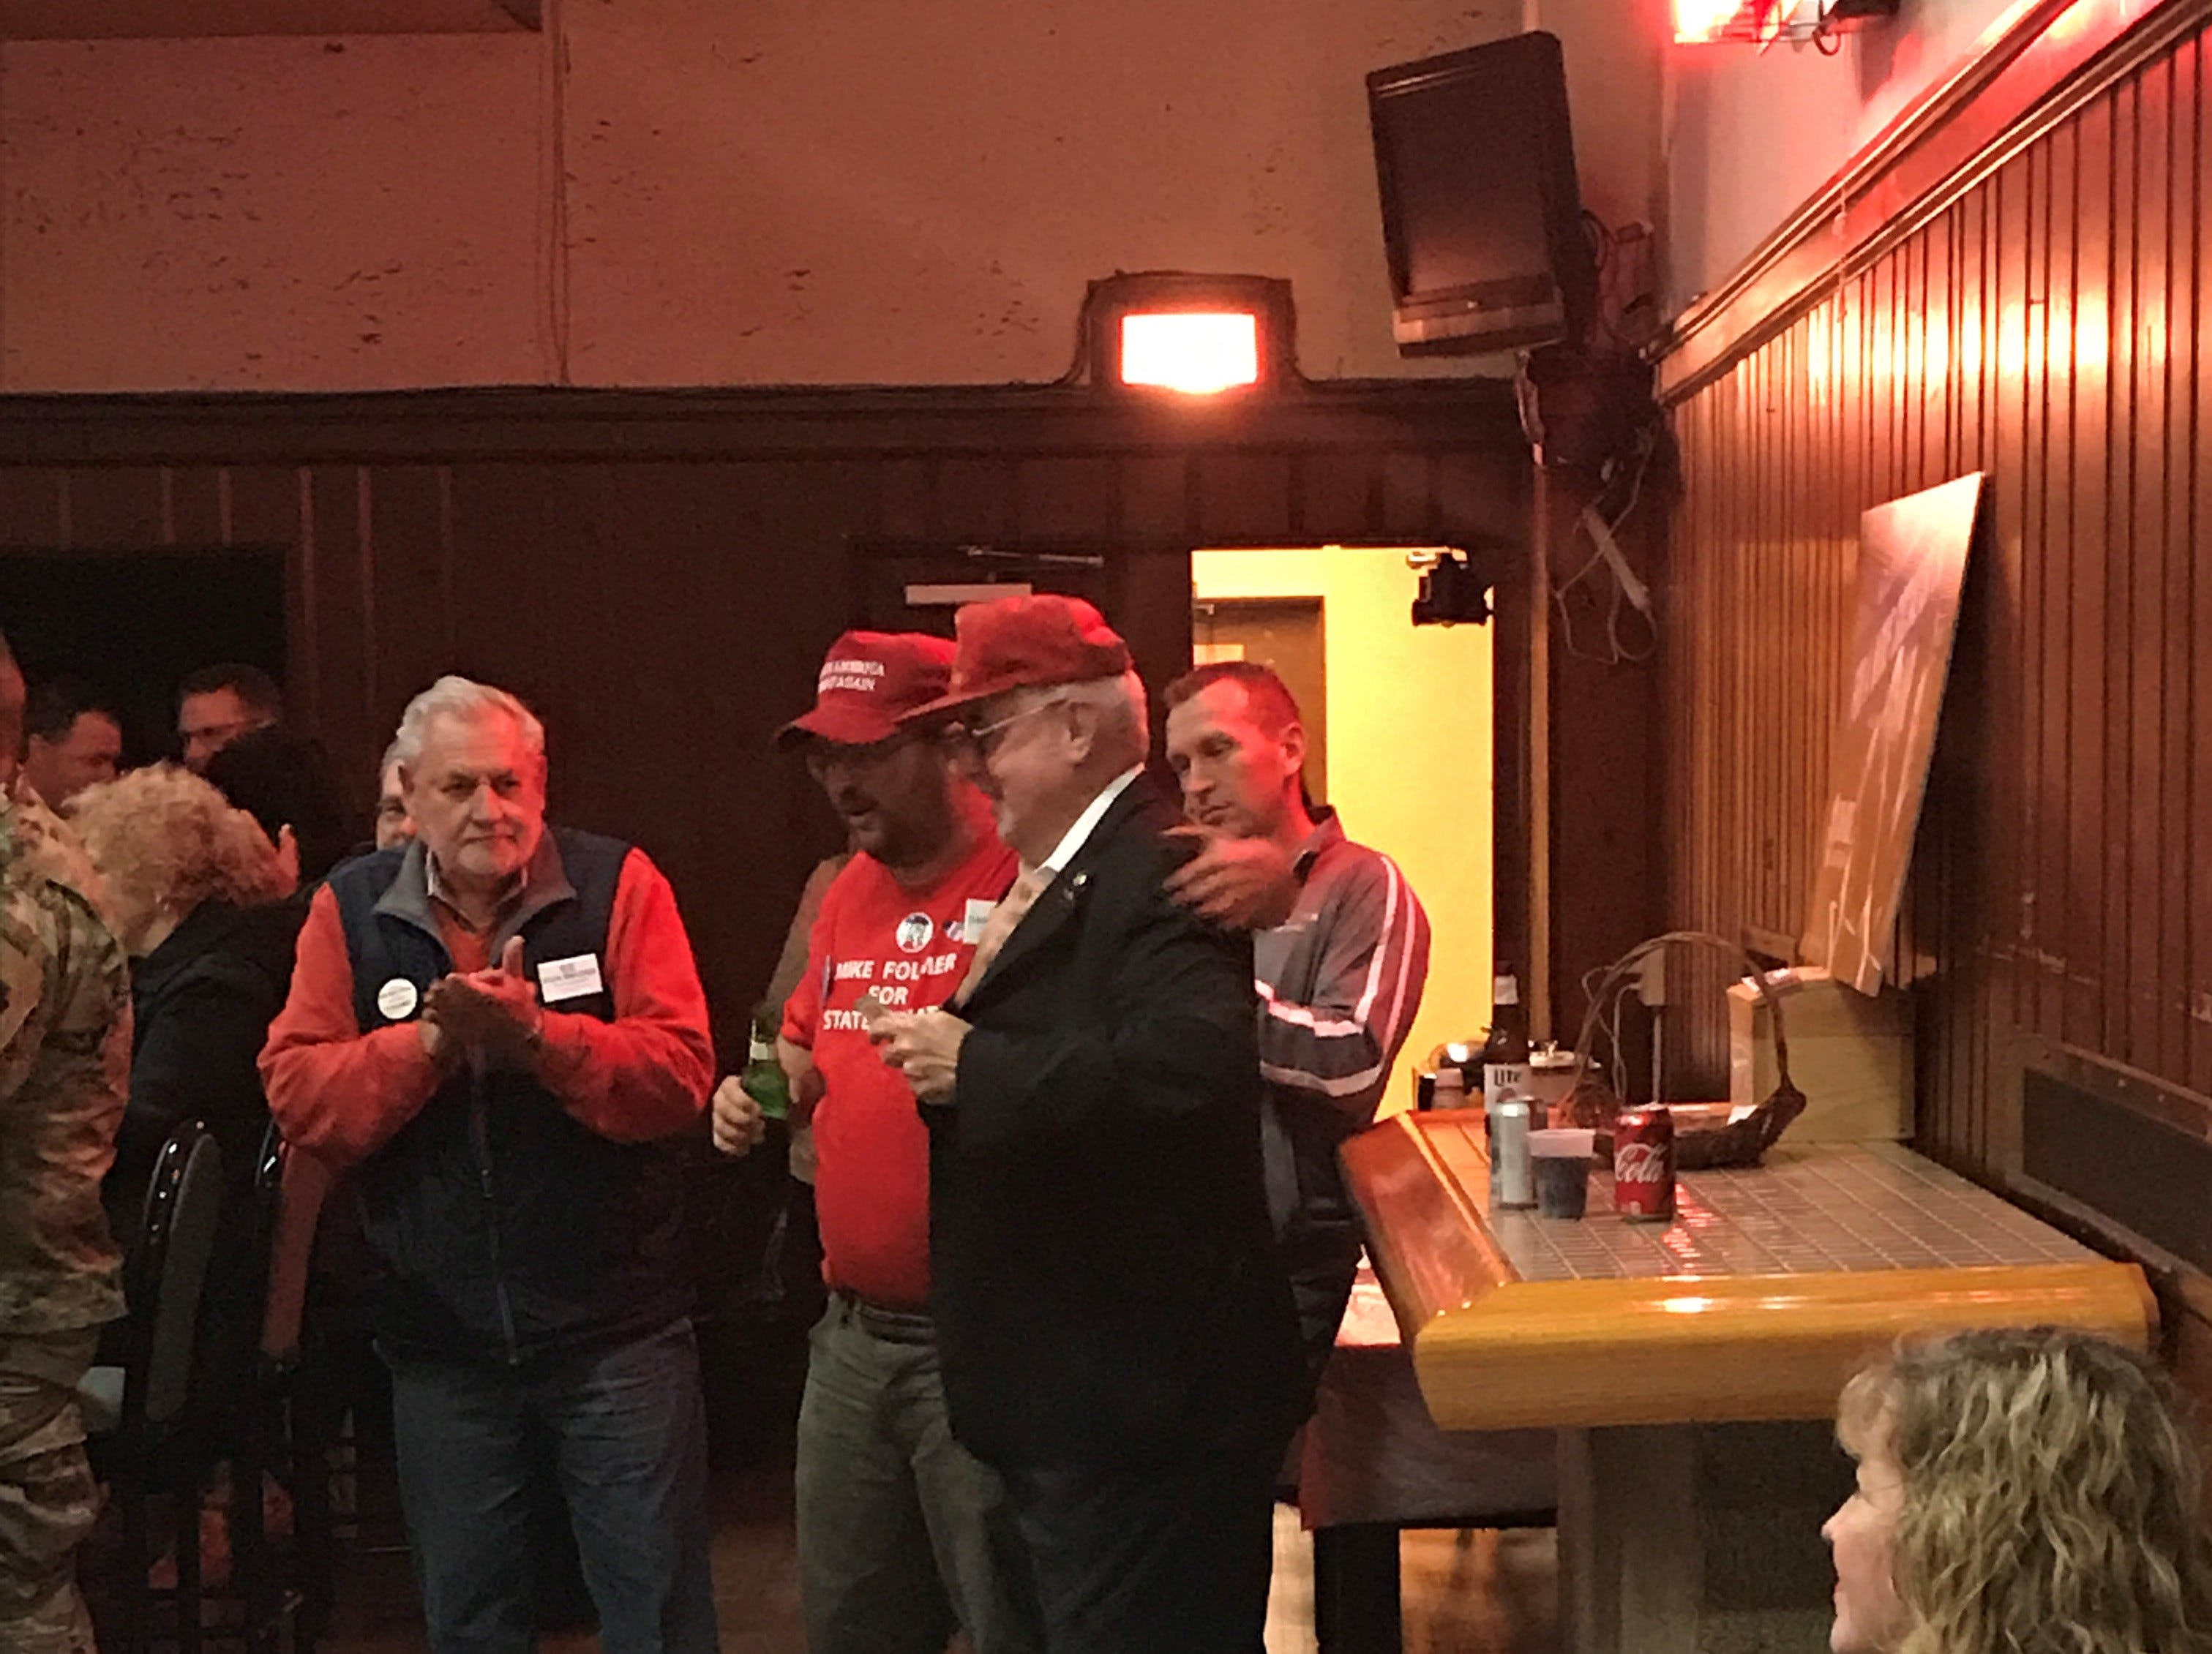 State Rep. Frank Ryan (in the black suit) receives congratulations from fellow Republicans after his election victory was announced Tuesday night.